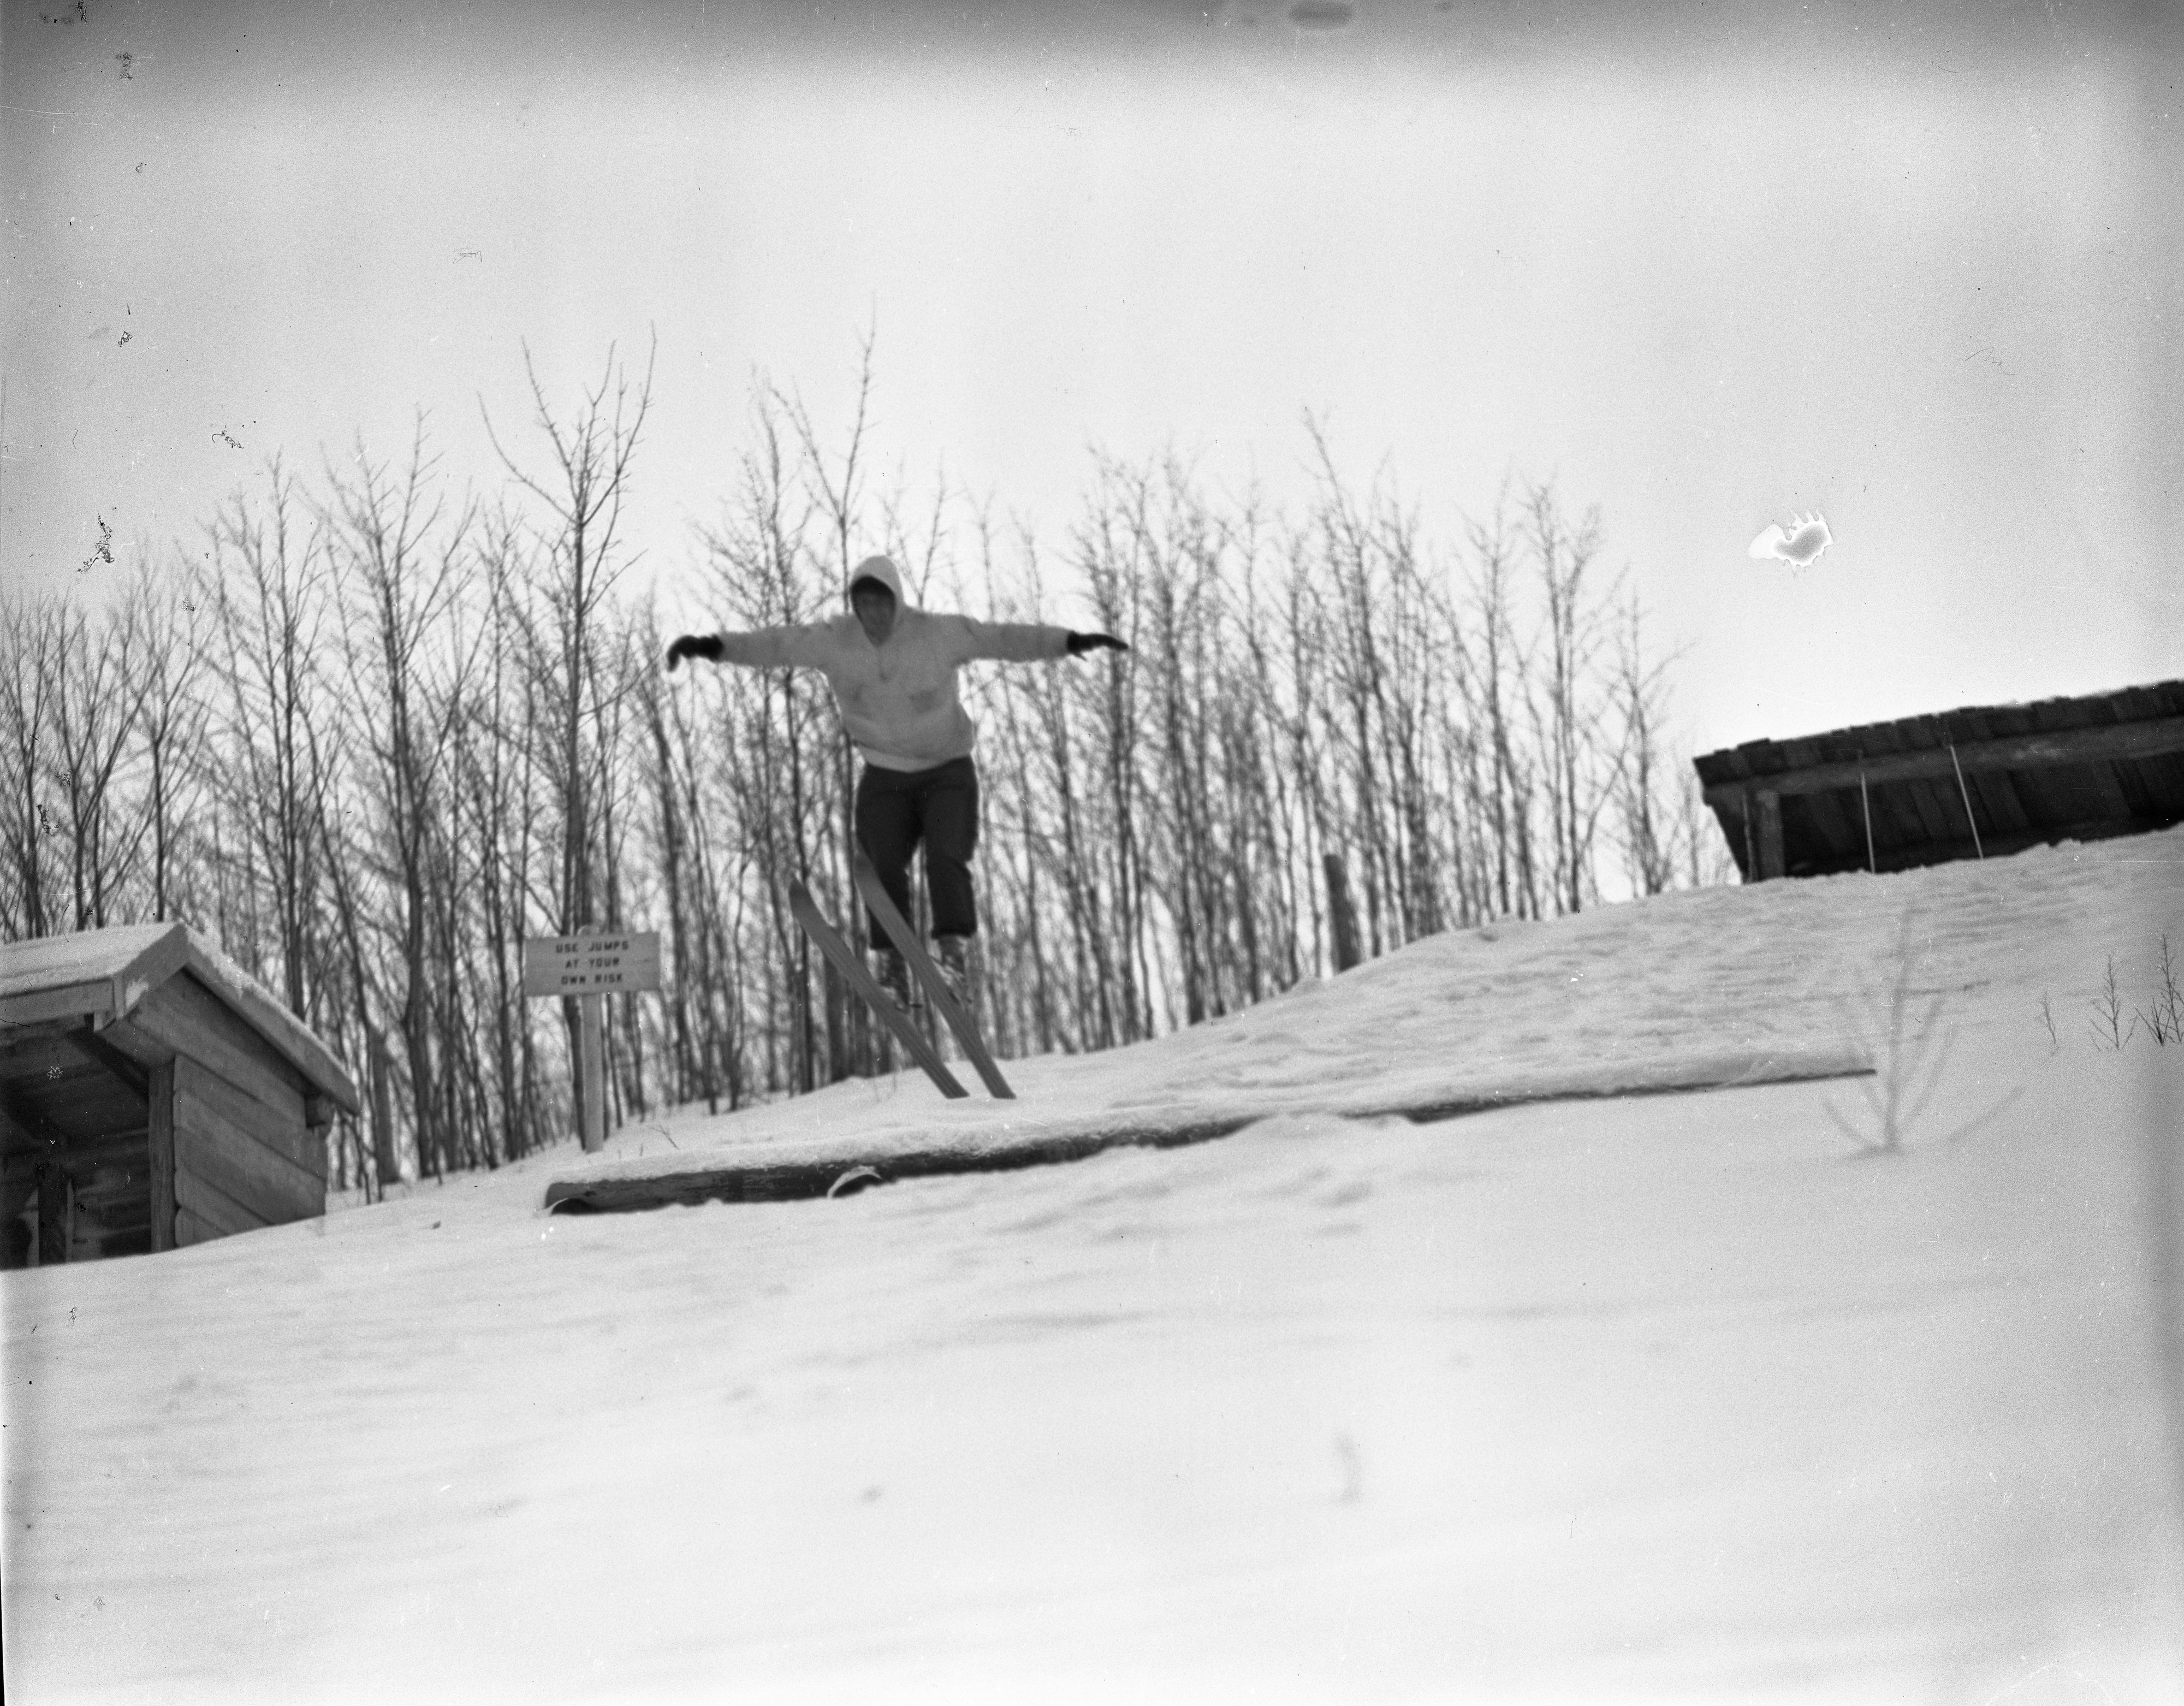 Skier In Air From Jump At Caberfae, February 1940 image